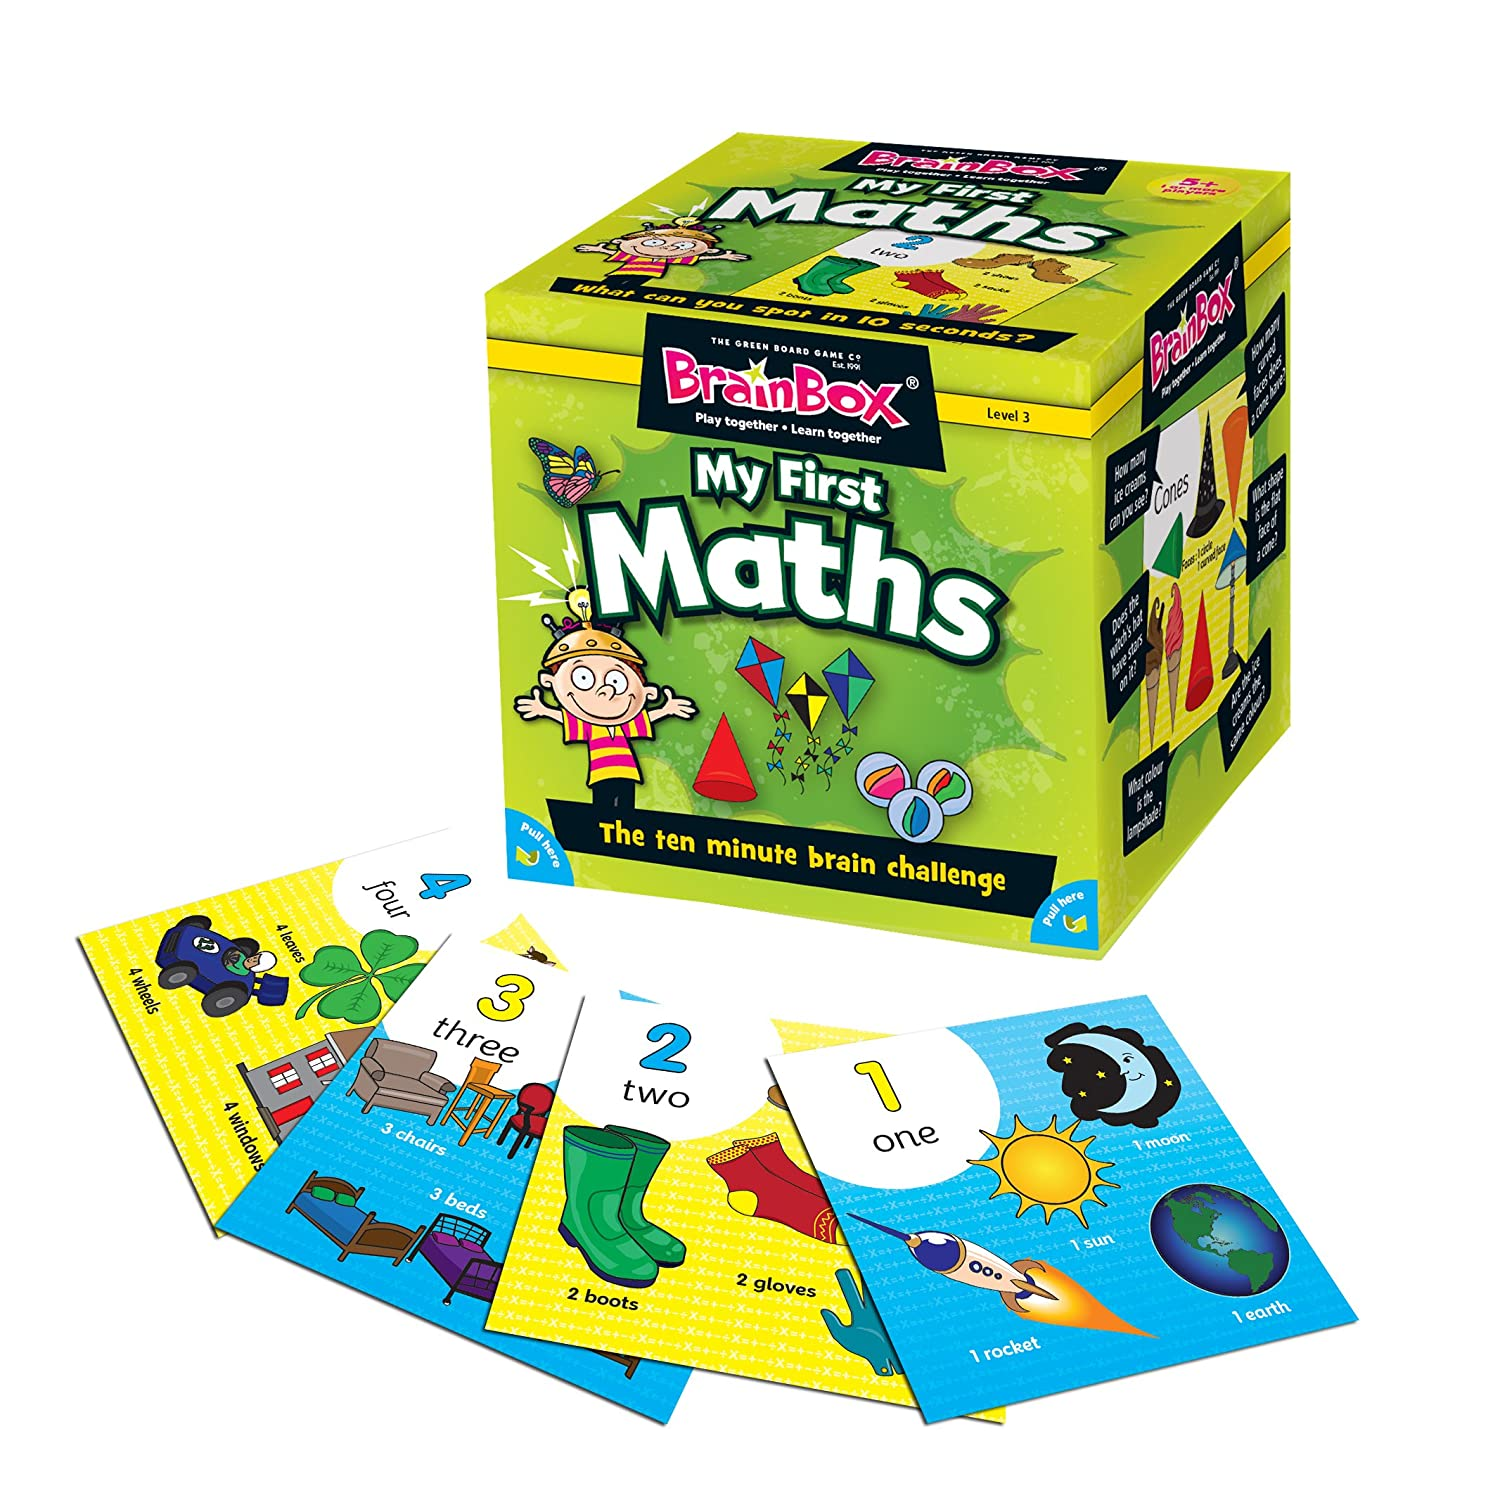 BrainBox - My First Maths Memory Game: Amazon.co.uk: Toys & Games